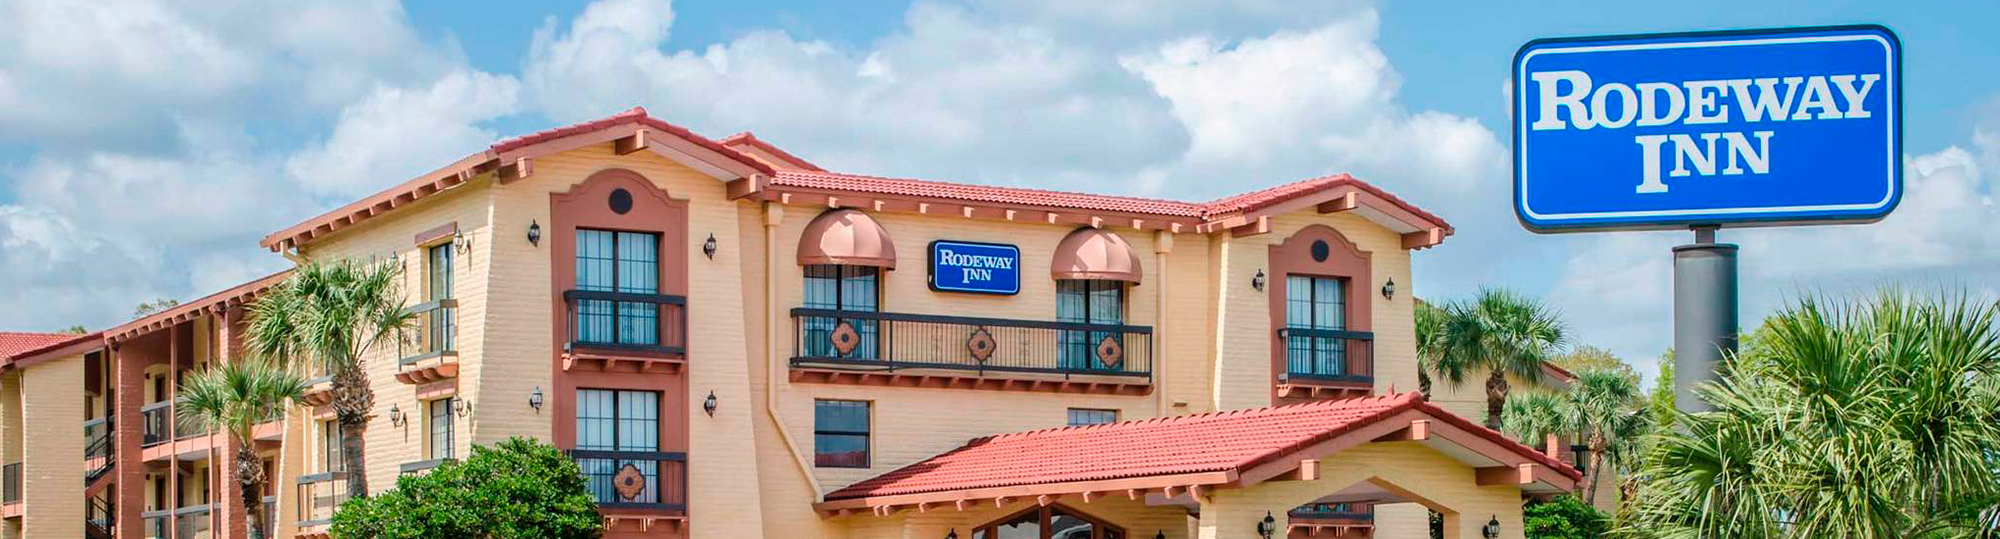 Rodeway Inn Military Discounts with Veterans Advantage